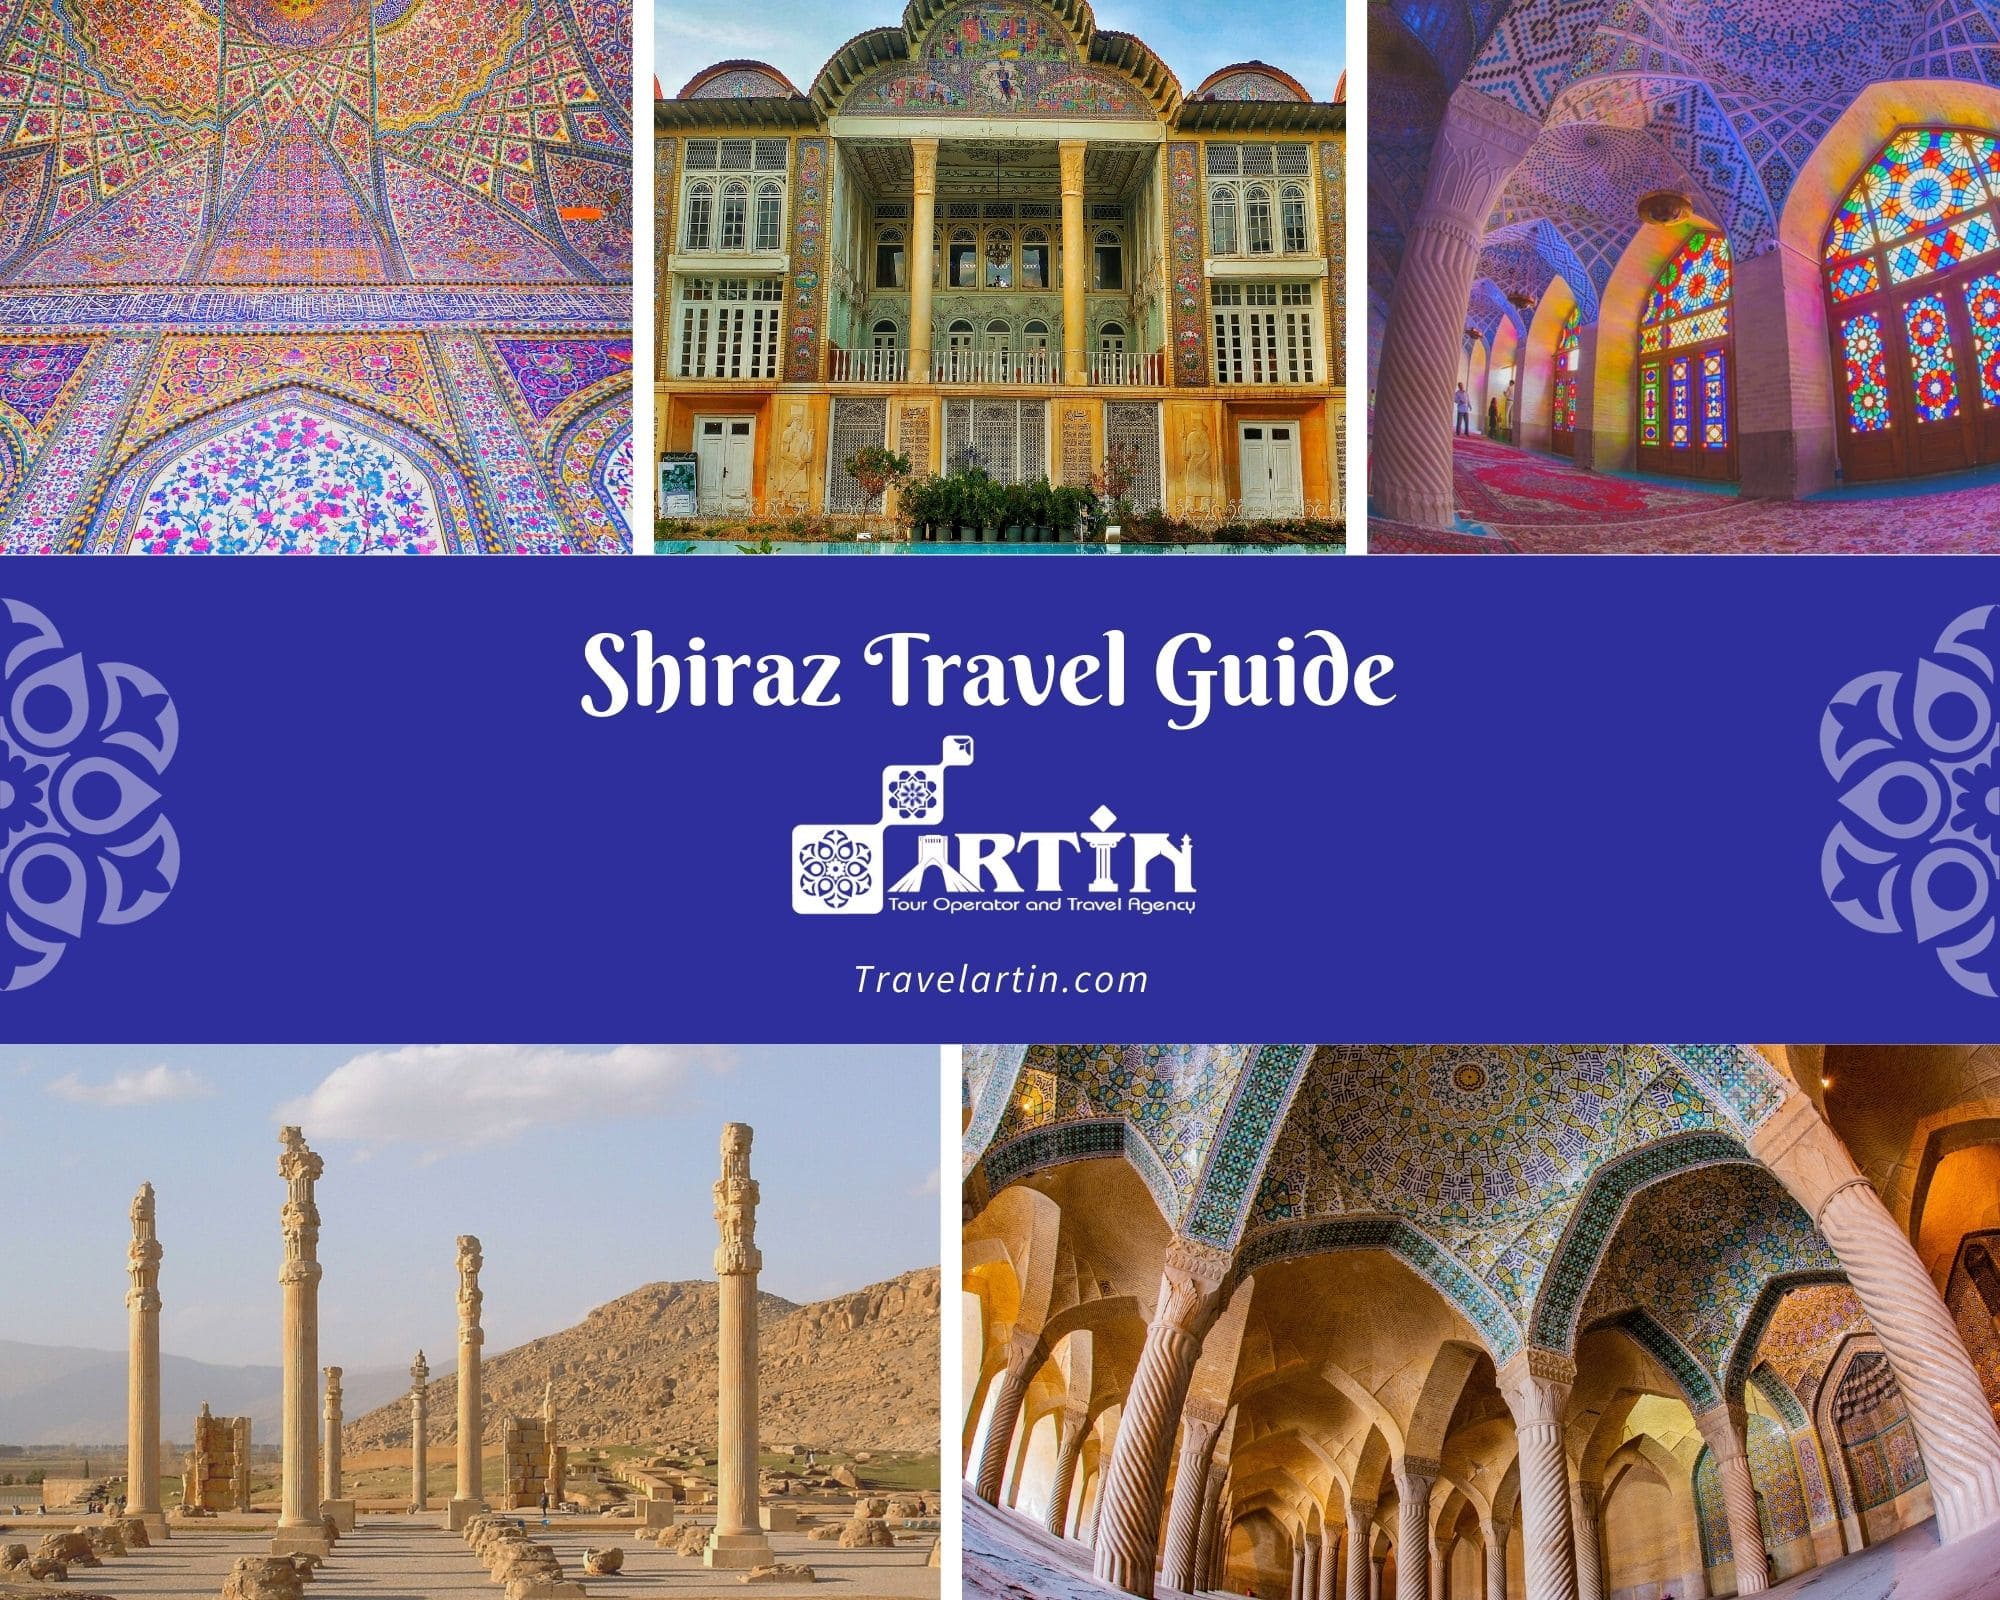 Shiraz travel guide- travelartin.com